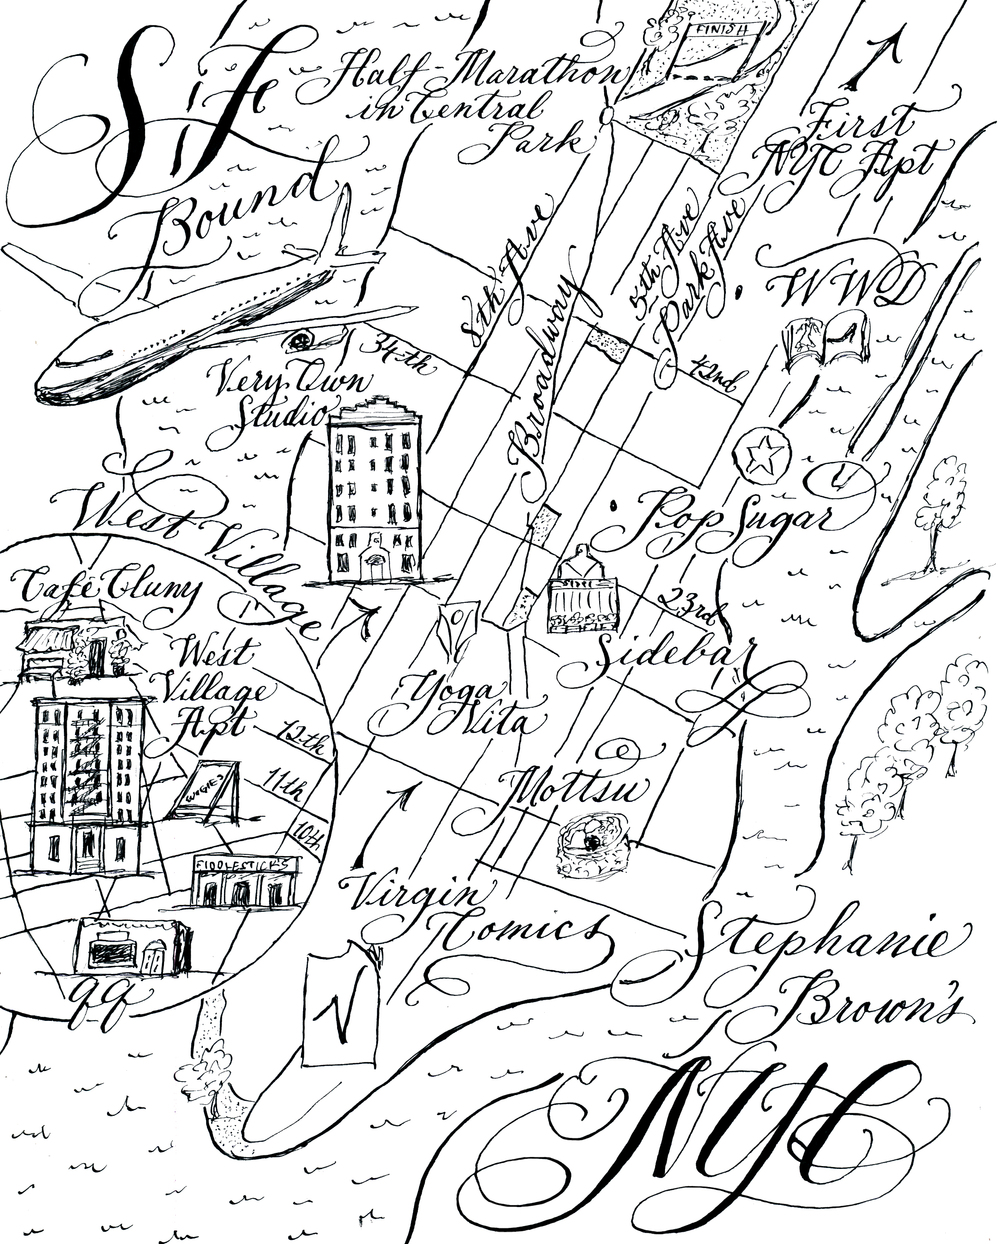 Stephanie Bueno's travel map by Robyn Love